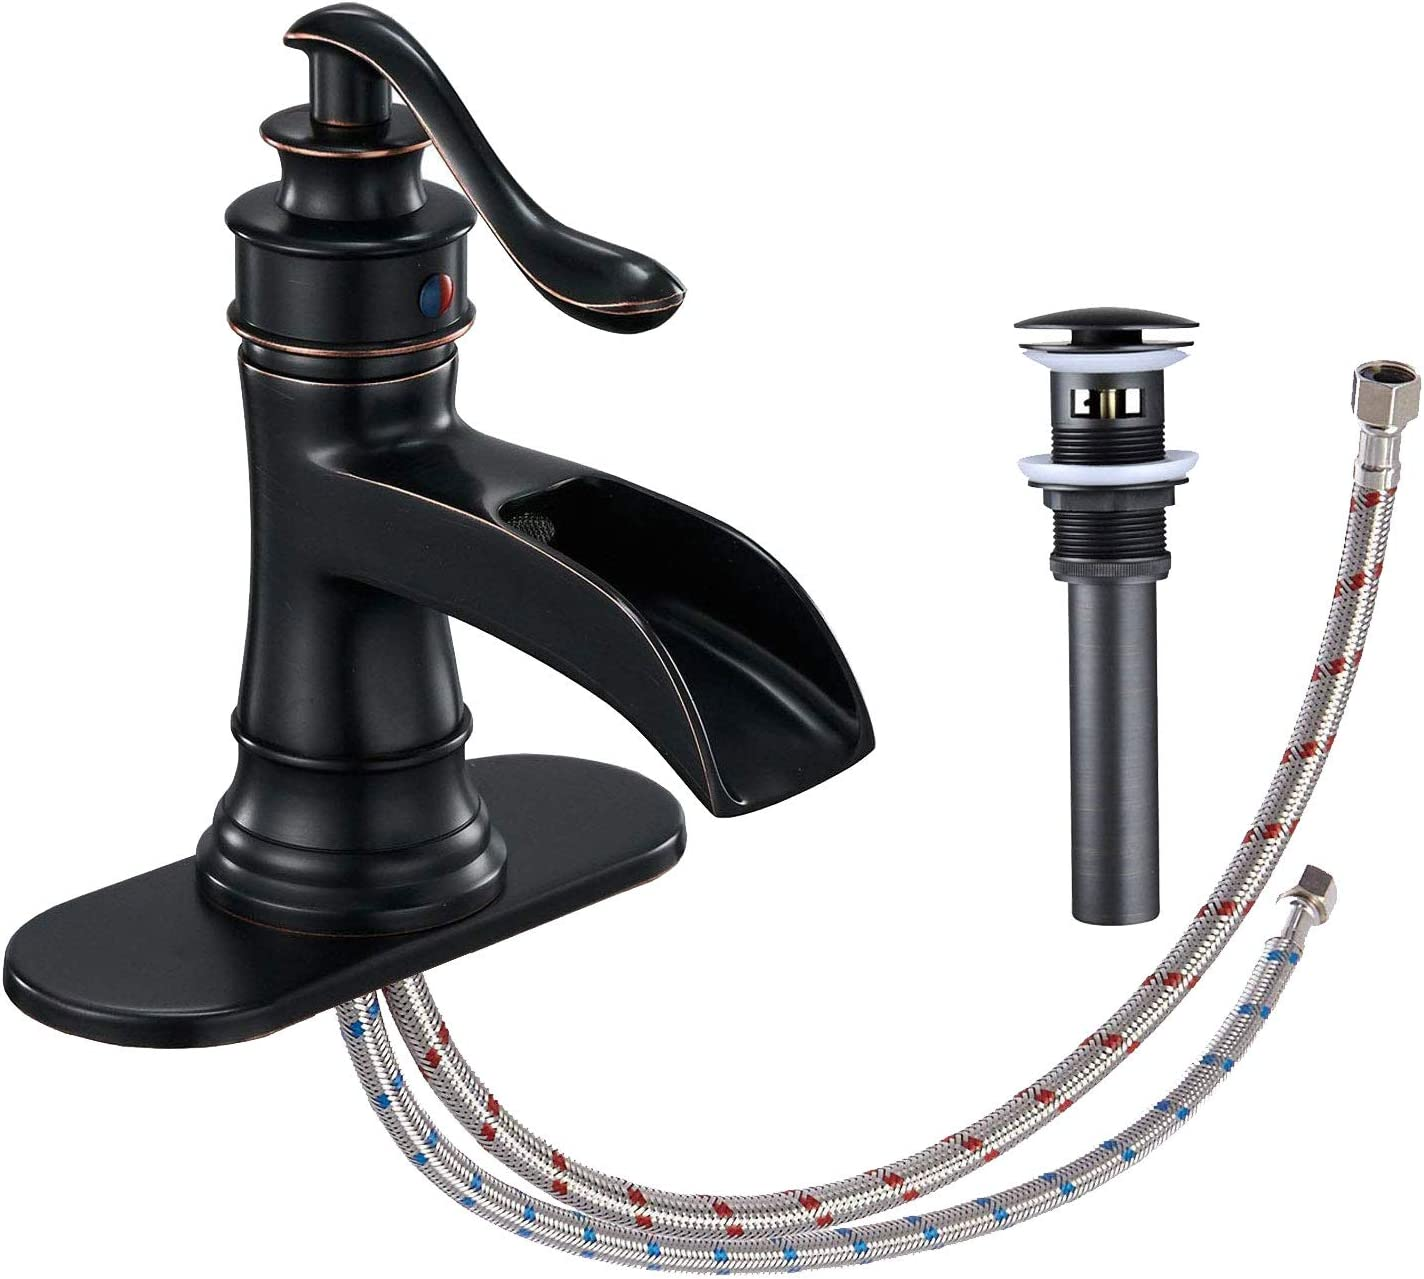 Bathroom Faucet Oil Rubbed Bronze Waterfall Spout Single Handle for Vanity Sink